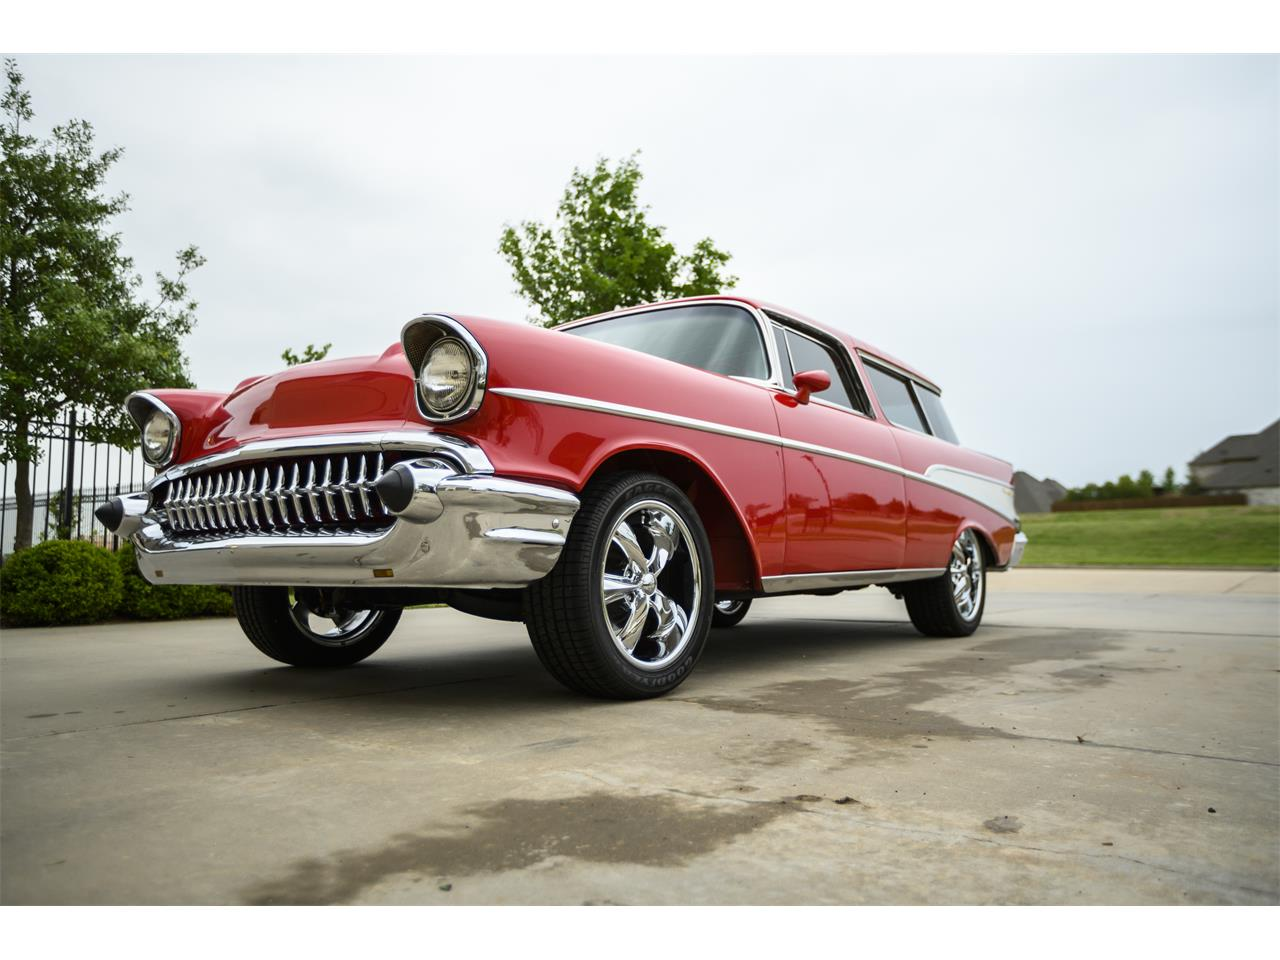 Large Picture of Classic 1957 Chevrolet Bel Air Nomad located in Lawton Oklahoma - $67,400.00 - PZTB